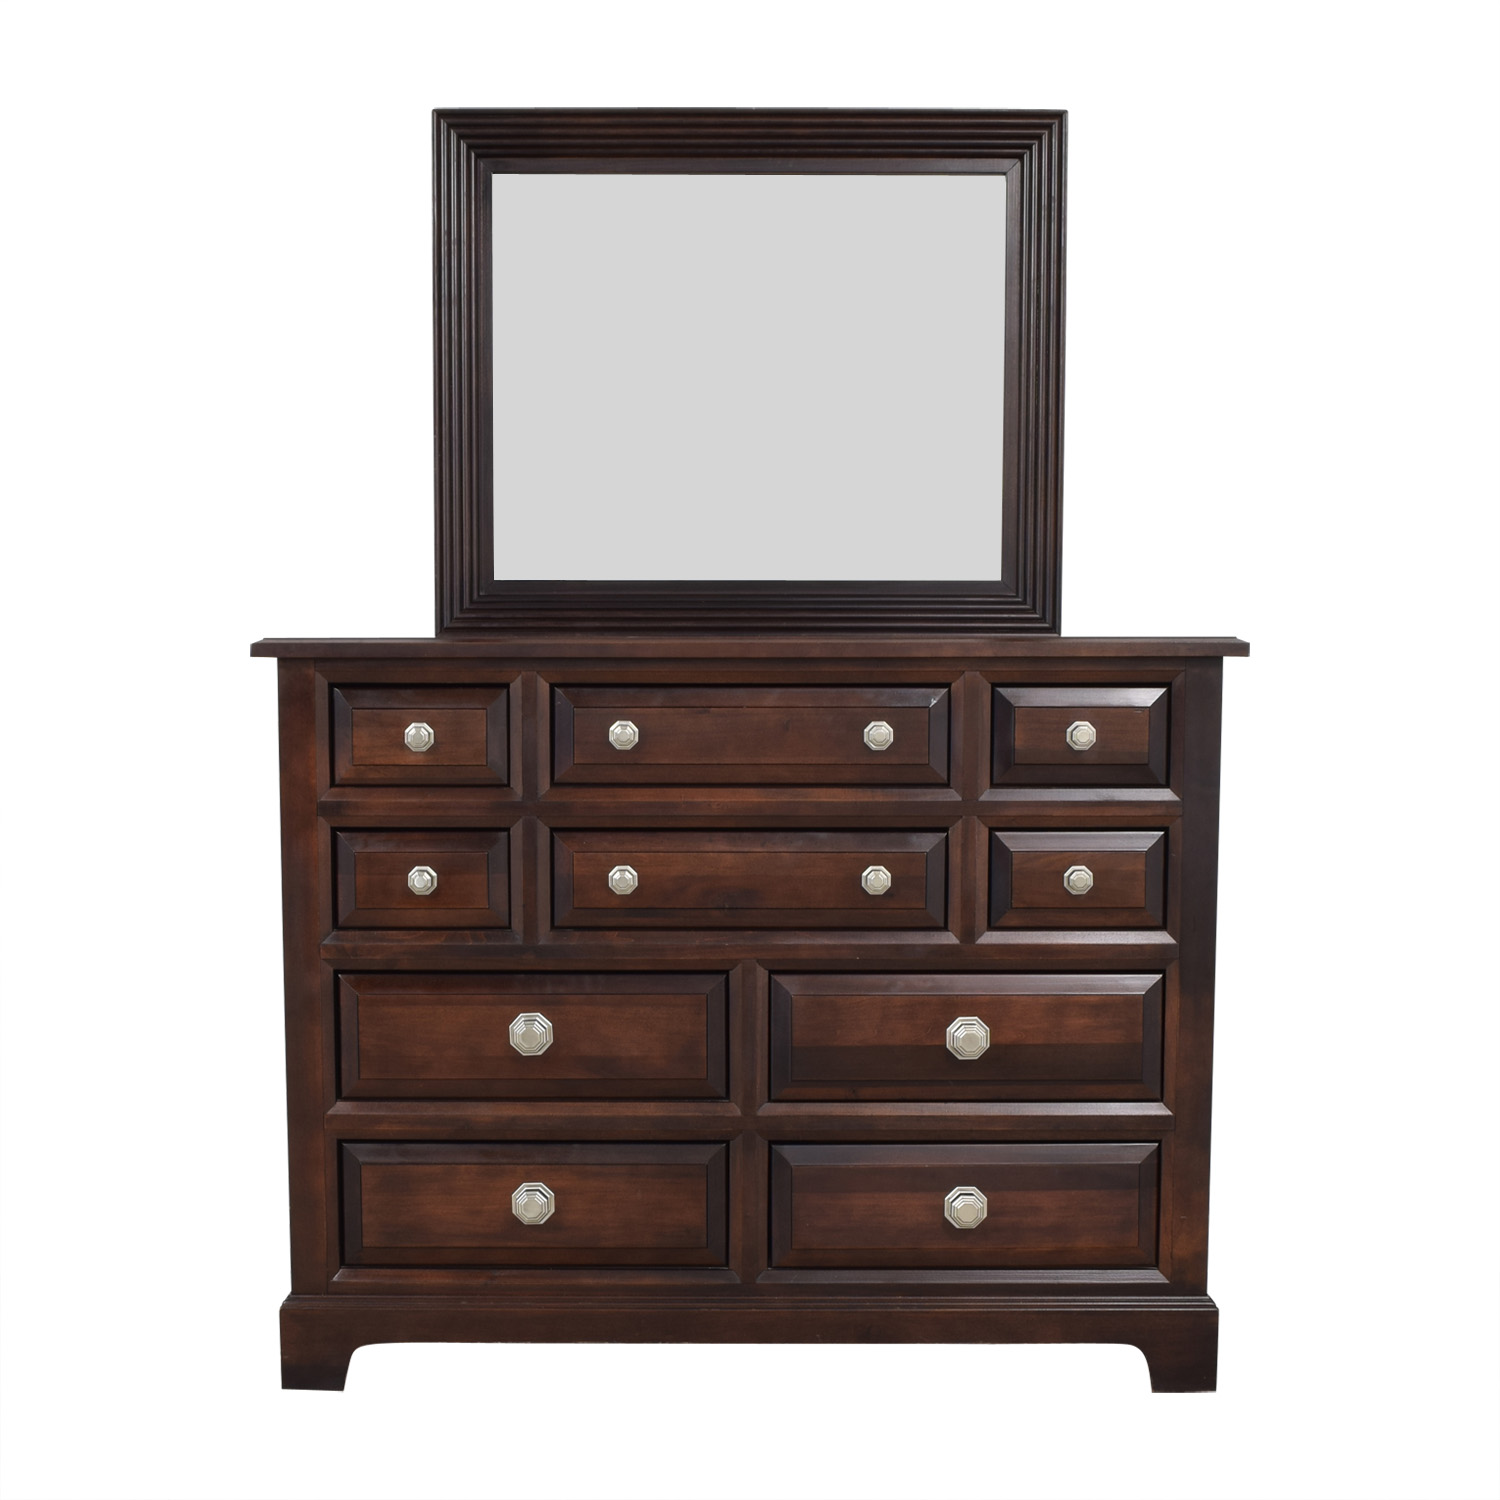 Vaughan-Bassett Vaughan-Bassett Ten-Drawer Dresser and Mirror for sale